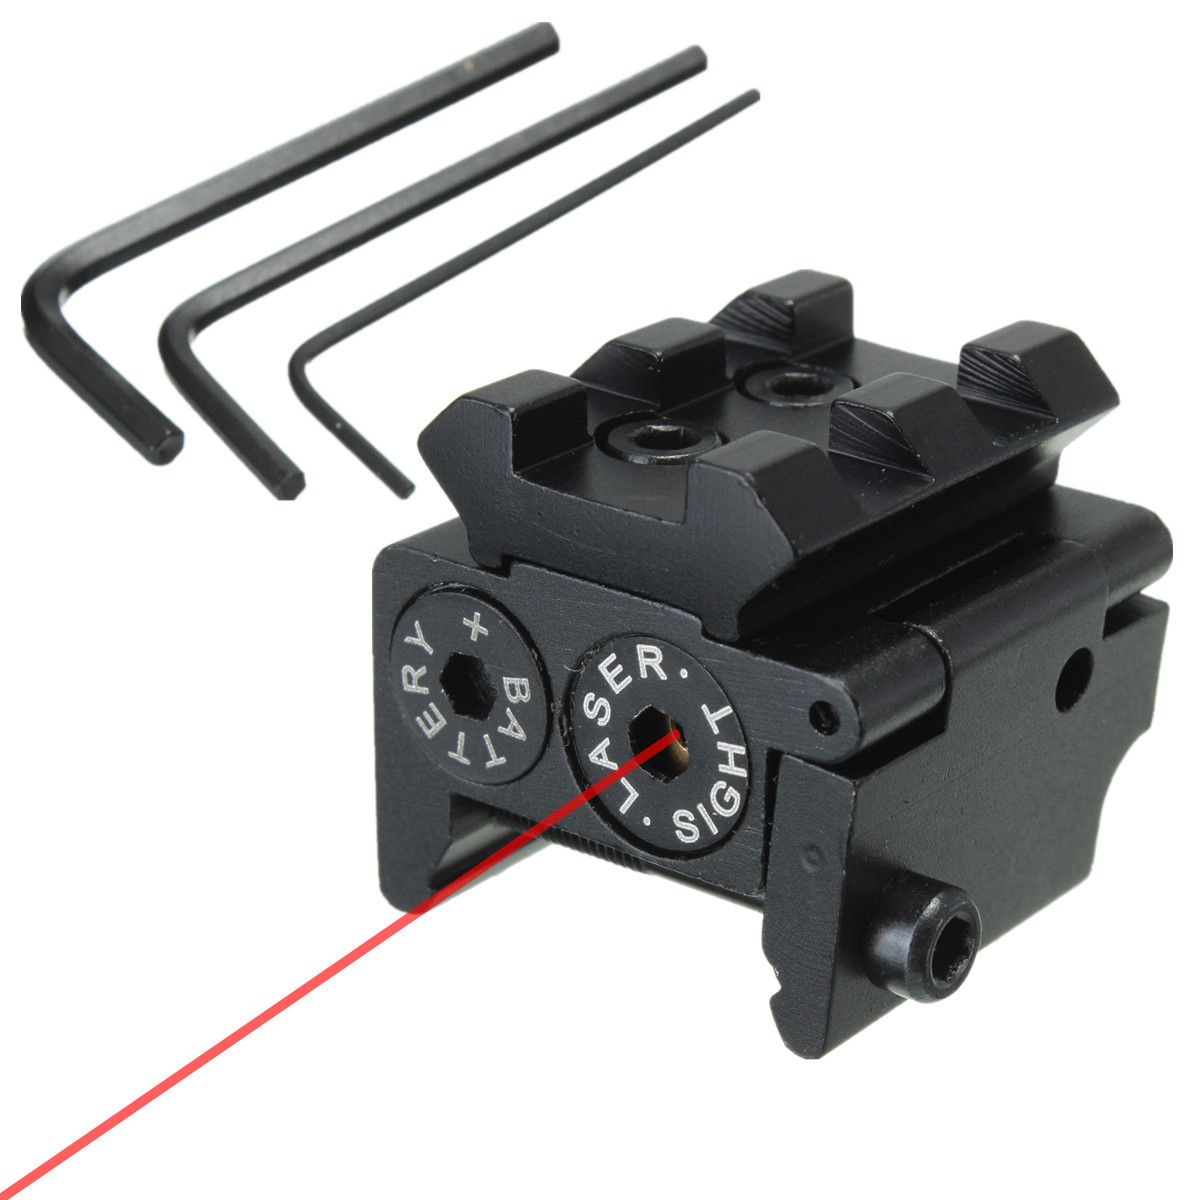 Mini Compact Tactical Red Dot Laser Bore Sight Scope With 20mm Picatinny Rail Mount optics blackout tactical pistol handgun weapon flashlight with green laser dot sight fit 20mm weaver rail for glock 17 19